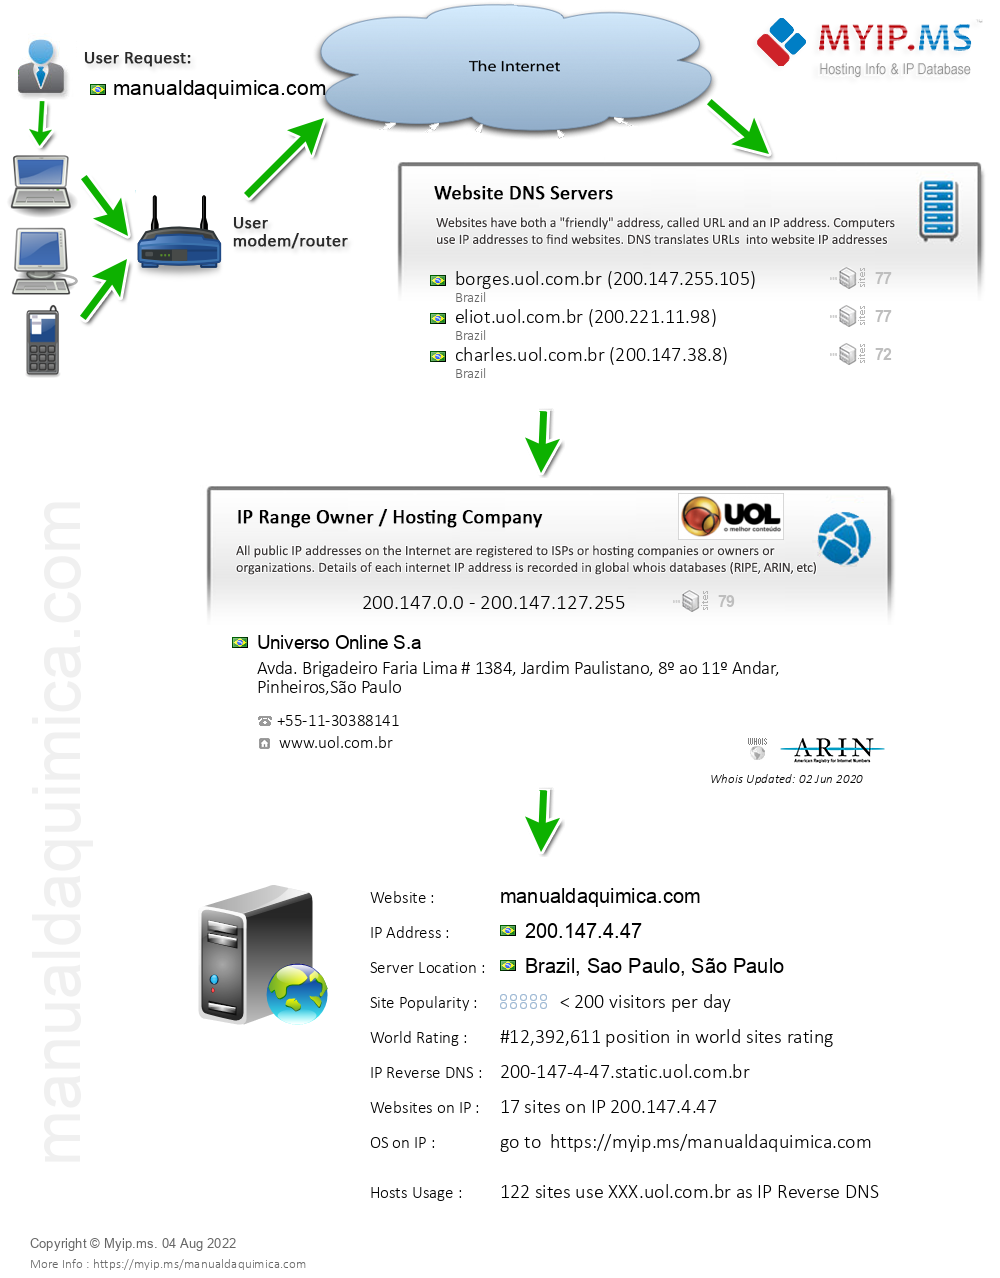 Manualdaquimica.com - Website Hosting Visual IP Diagram